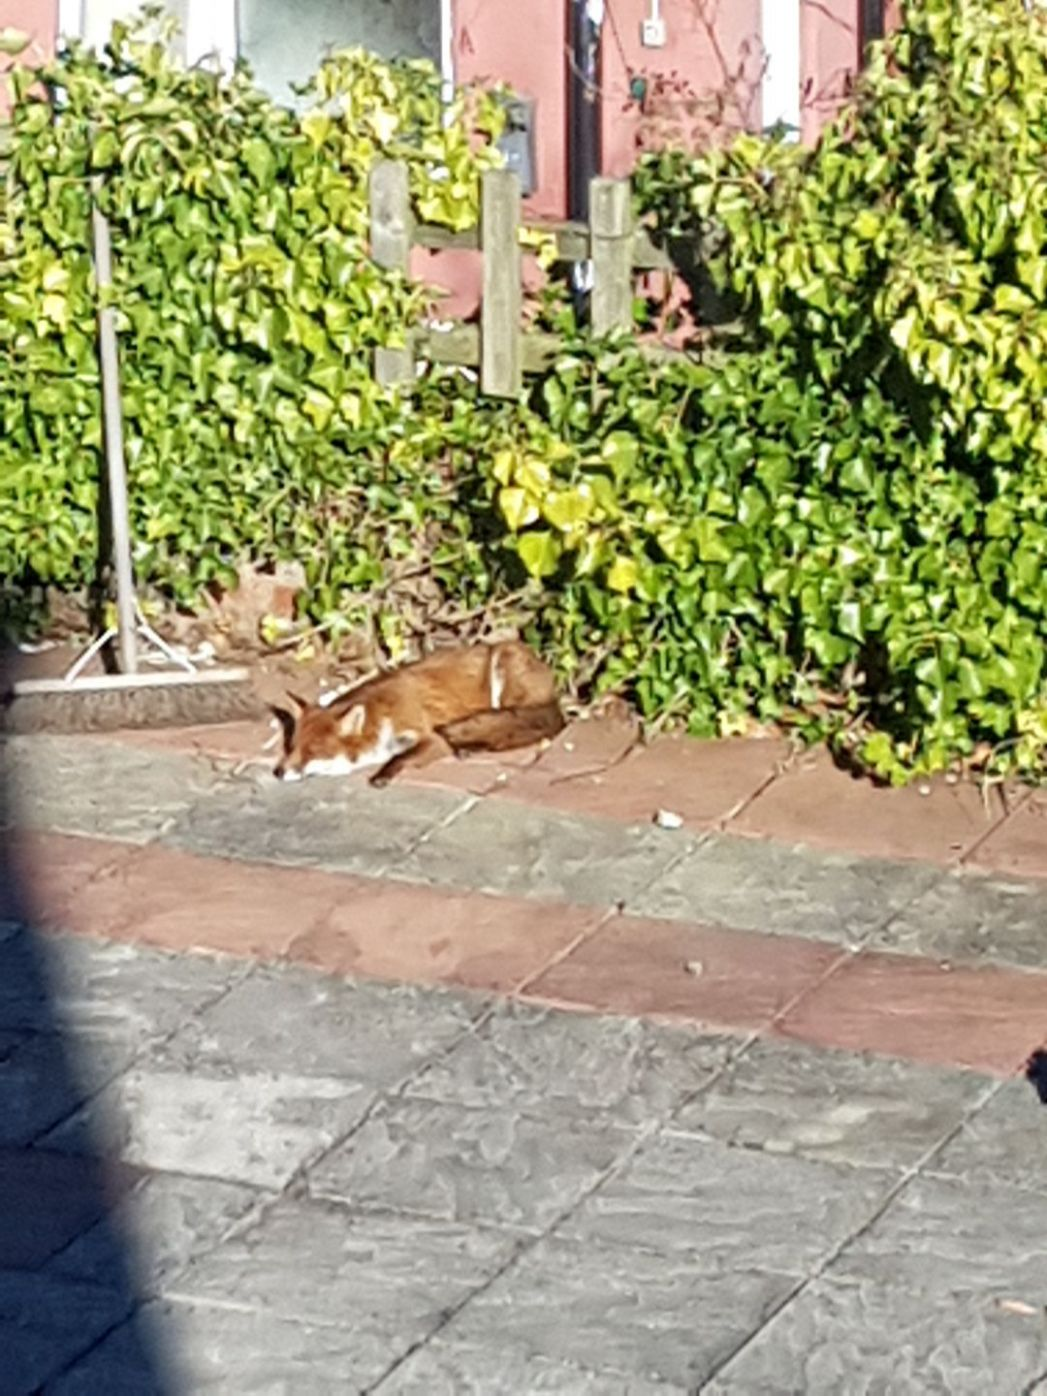 To leave some food out for the fox in our garden